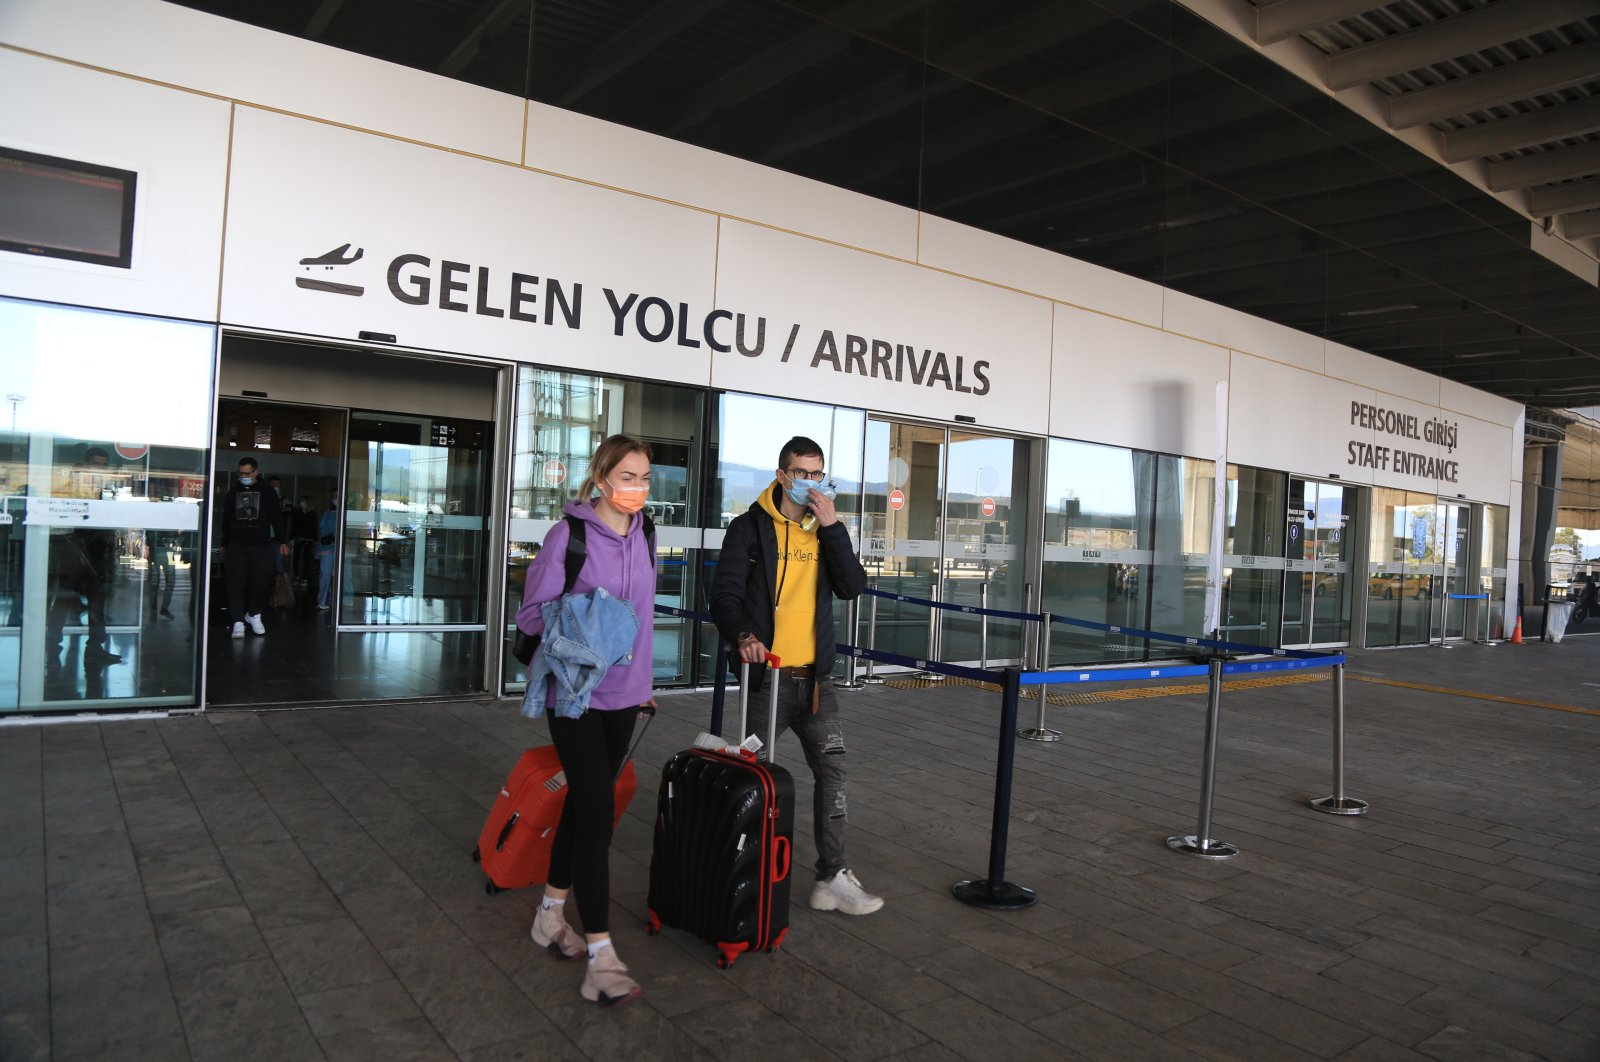 Russian tourists arrive at Milas-Bodrum Airport, Bodrum, southwestern Turkey, April 11, 2021. (AA Photo)